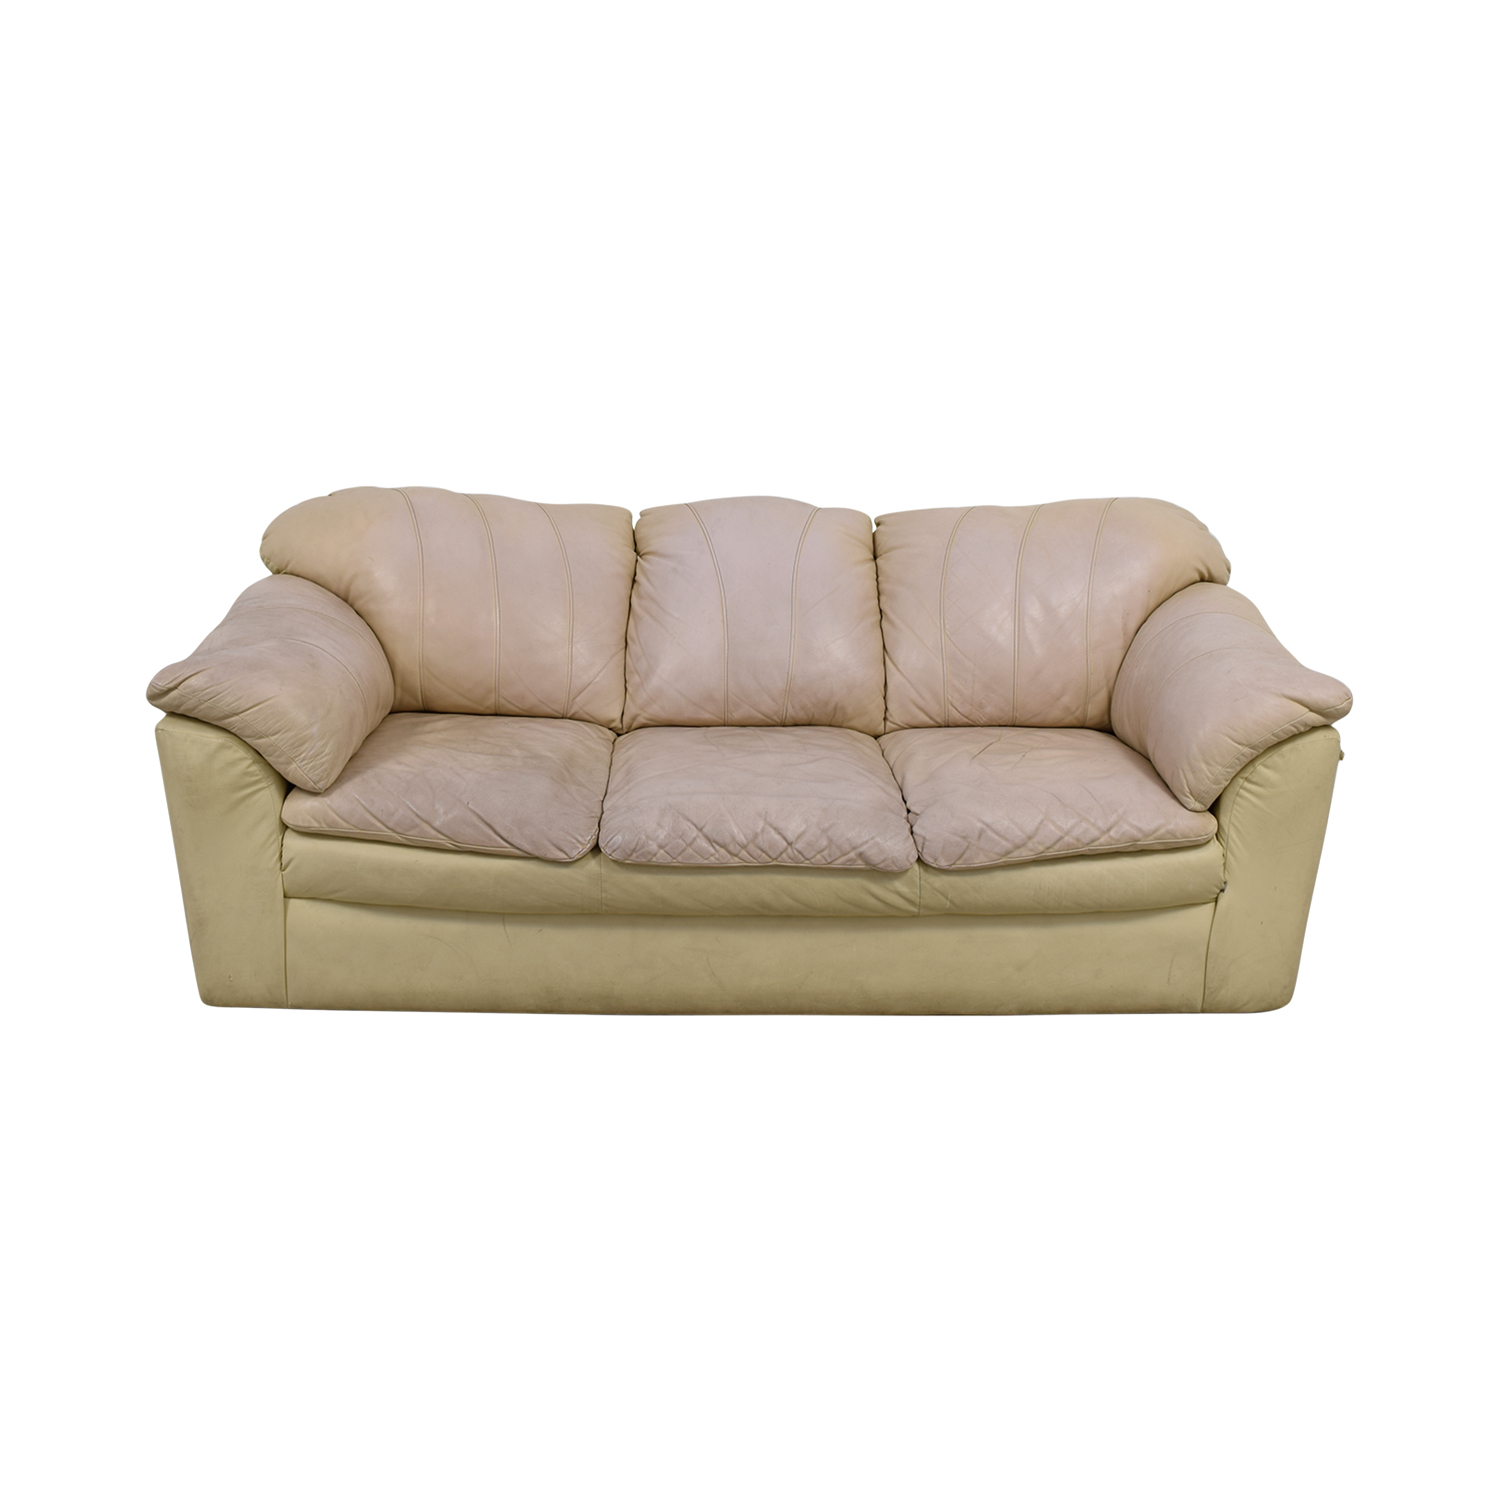 Cream Leather Pillowed Arm Sofa / Sofas